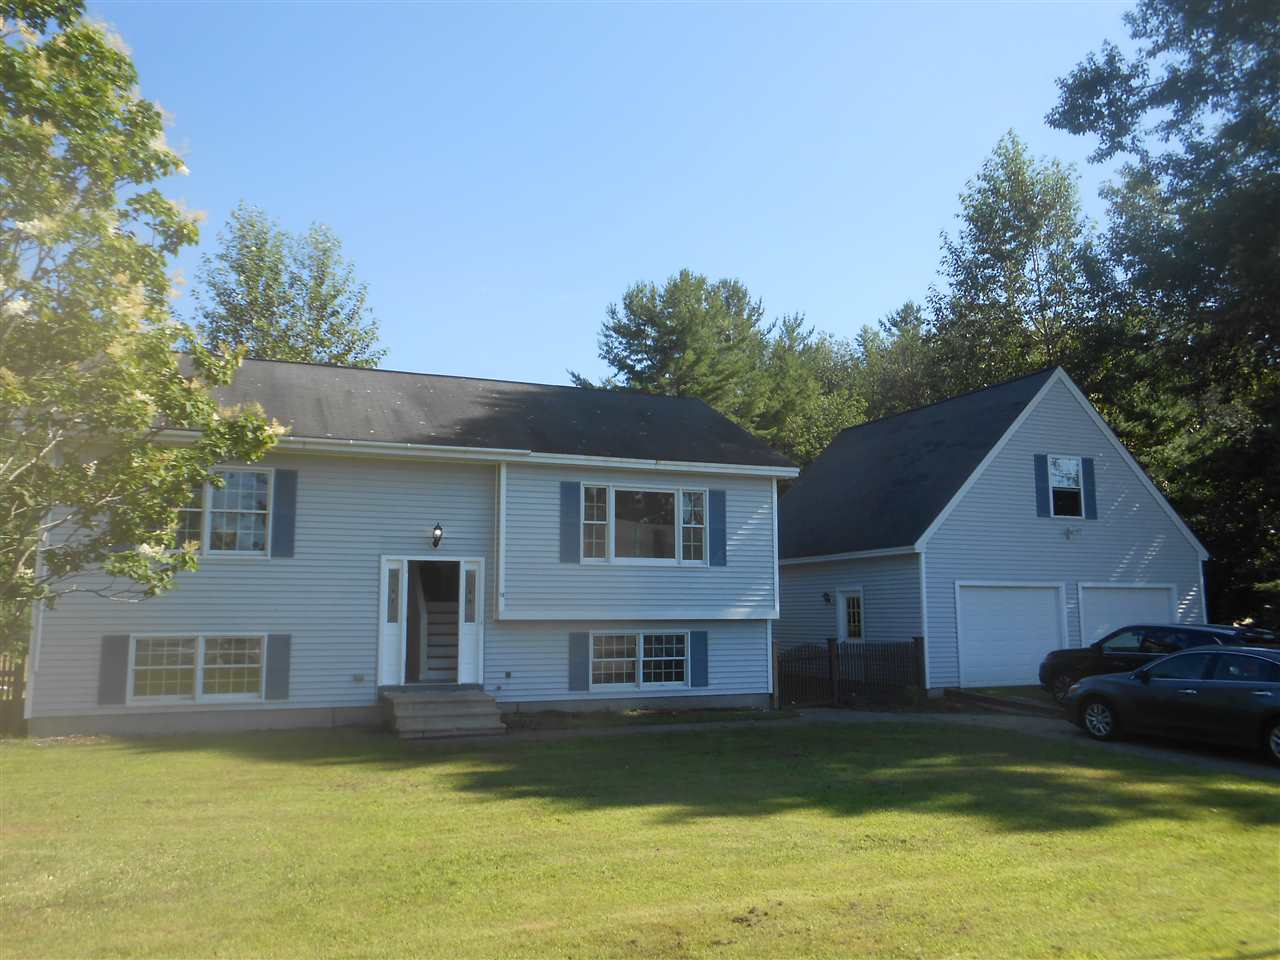 Photo of 19 Stackpole Road Somersworth NH 03878